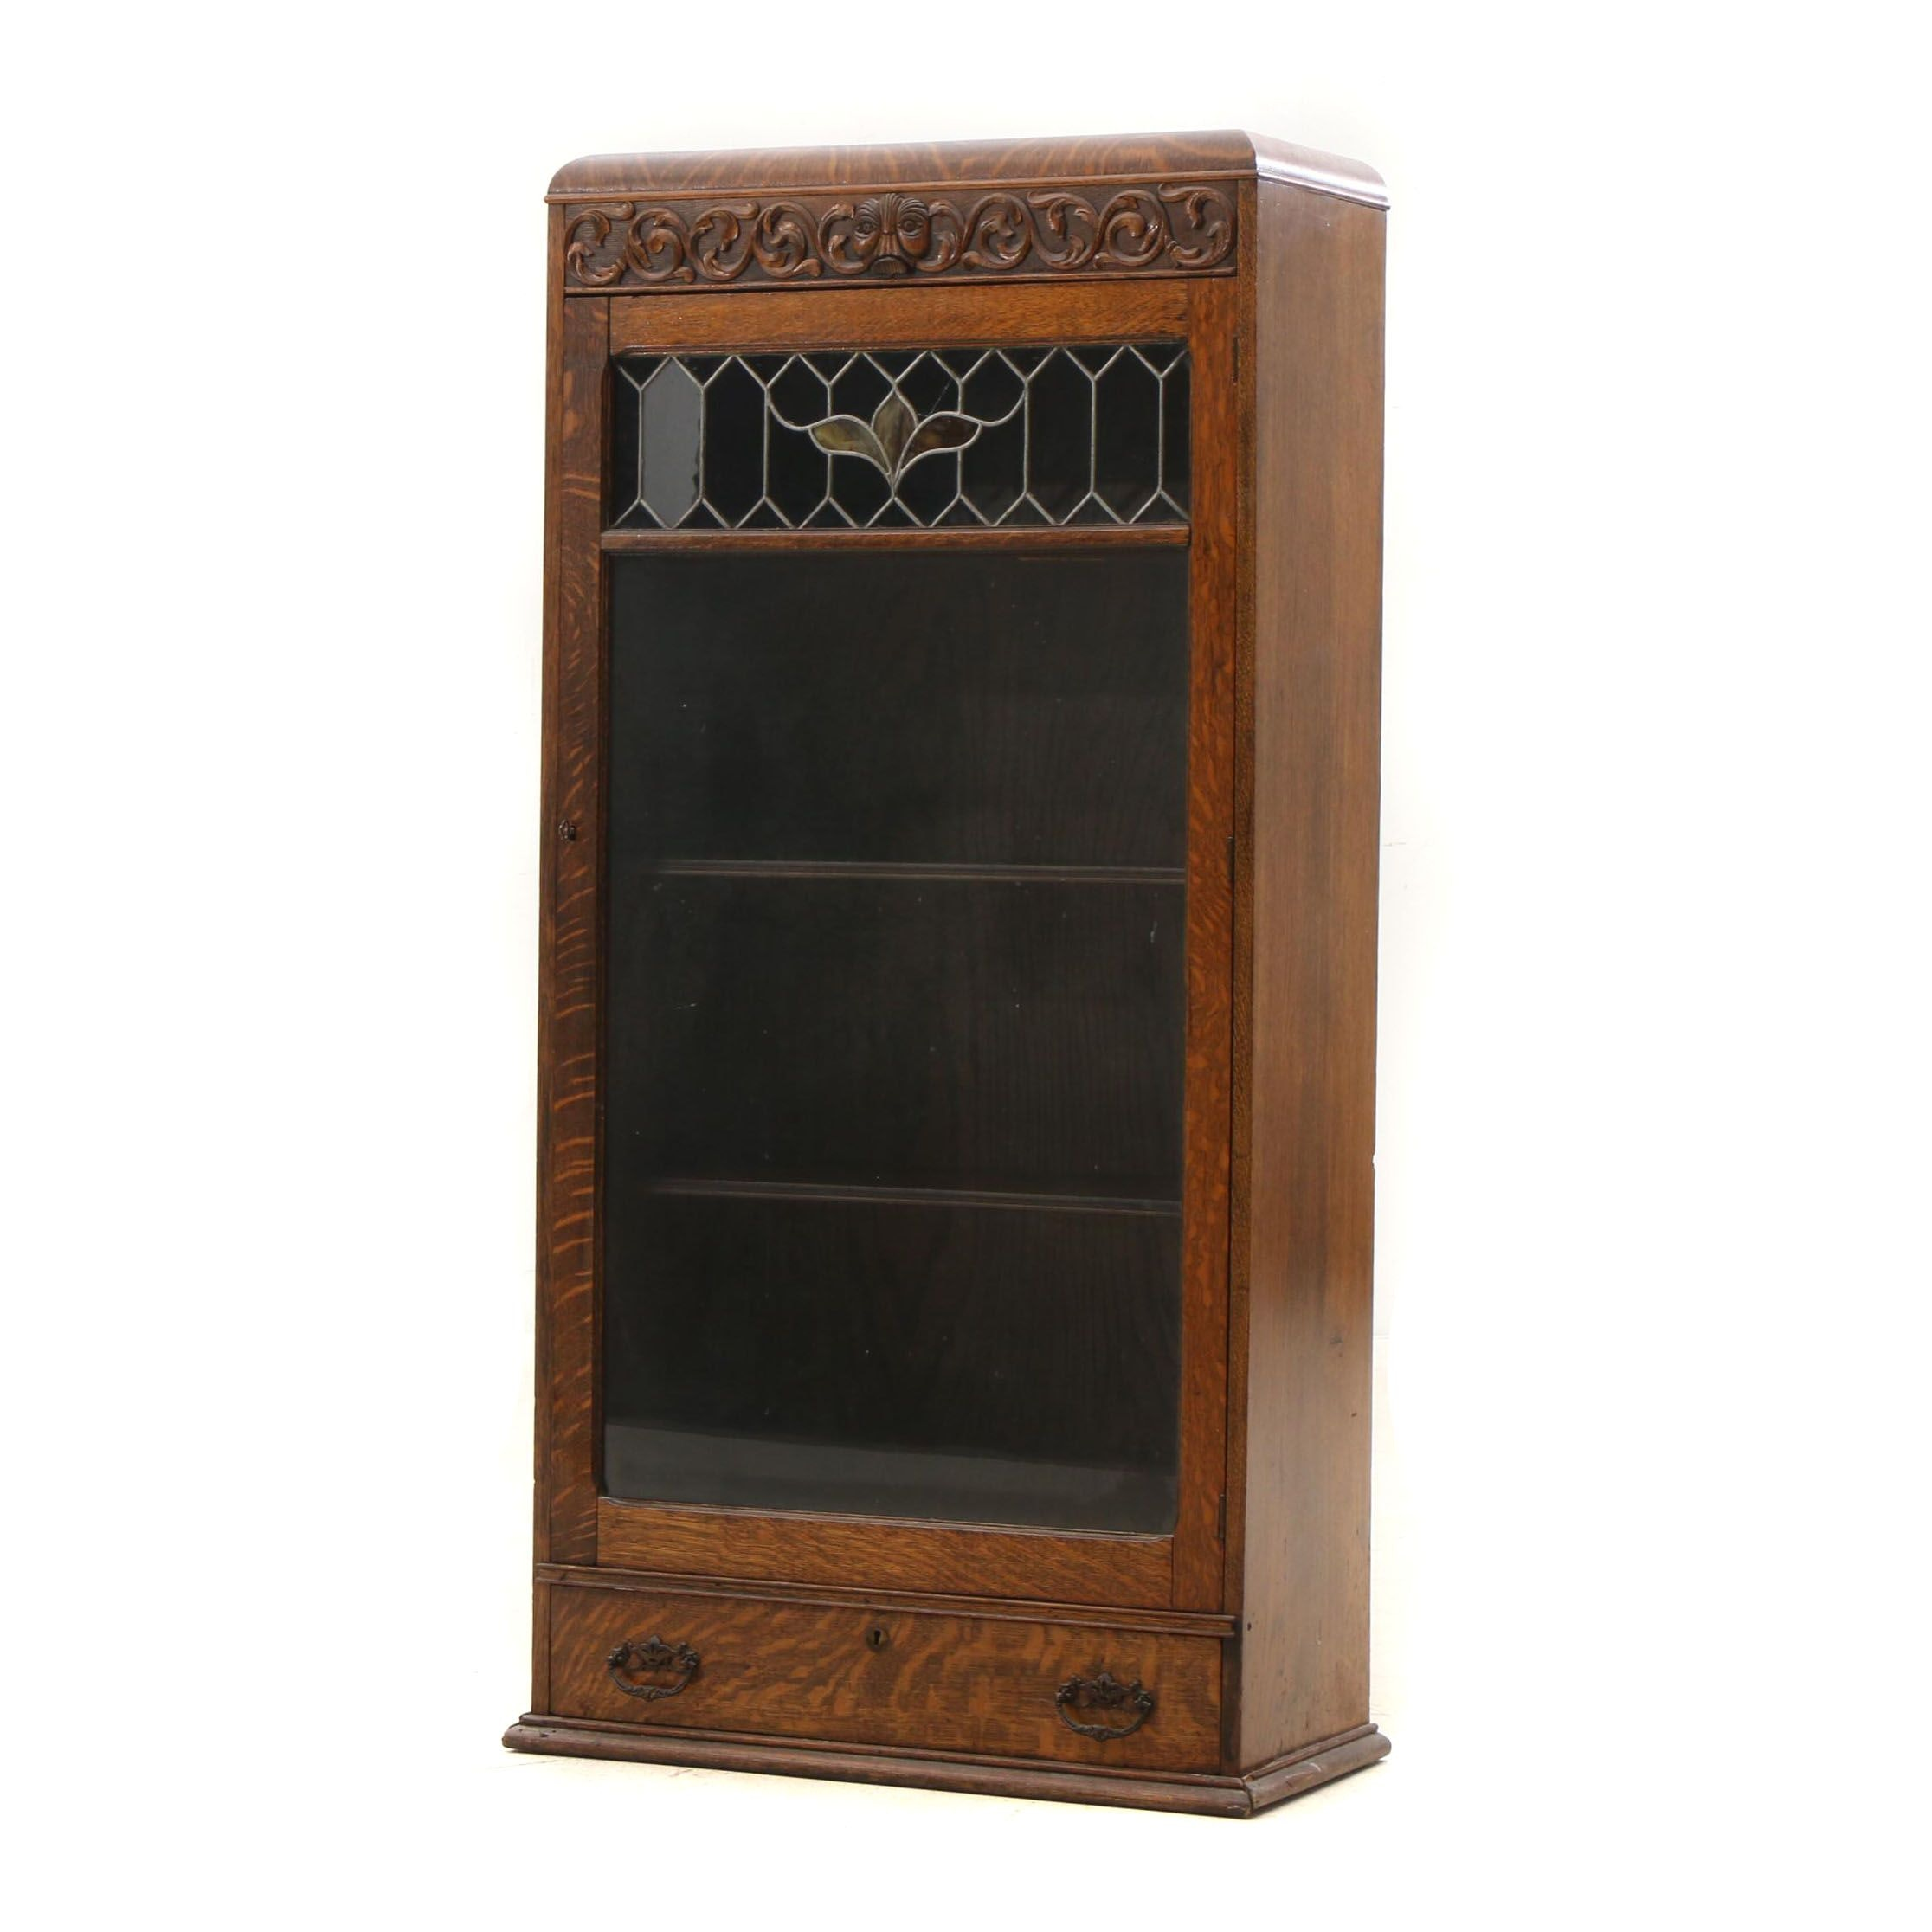 Late Victorian Oak Glass Front Display Cabinet, Circa 1920